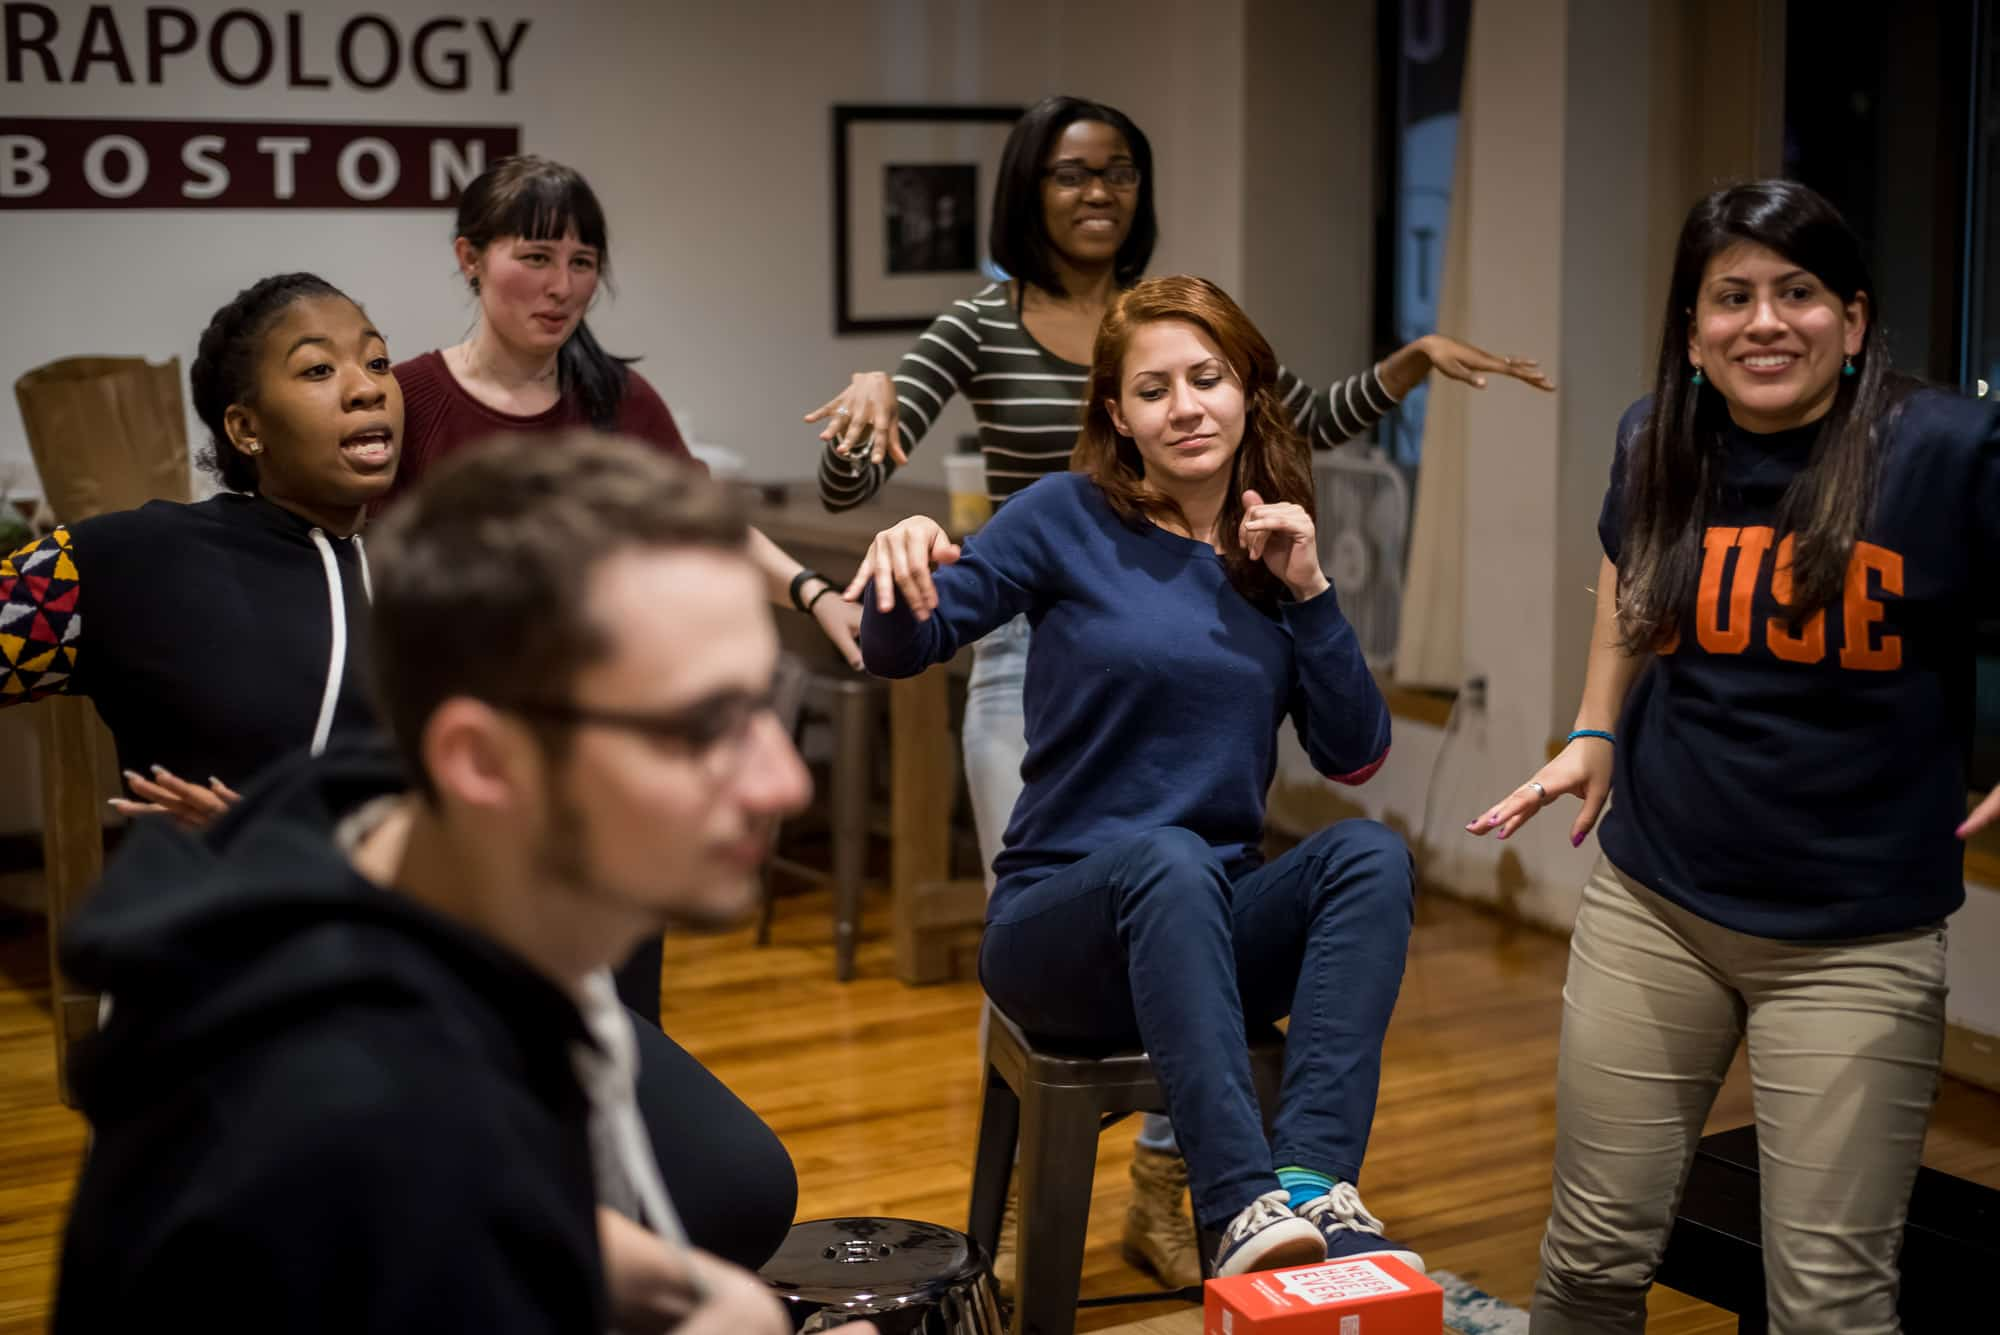 Trapology Escape Room Boston Team Building Game night fun